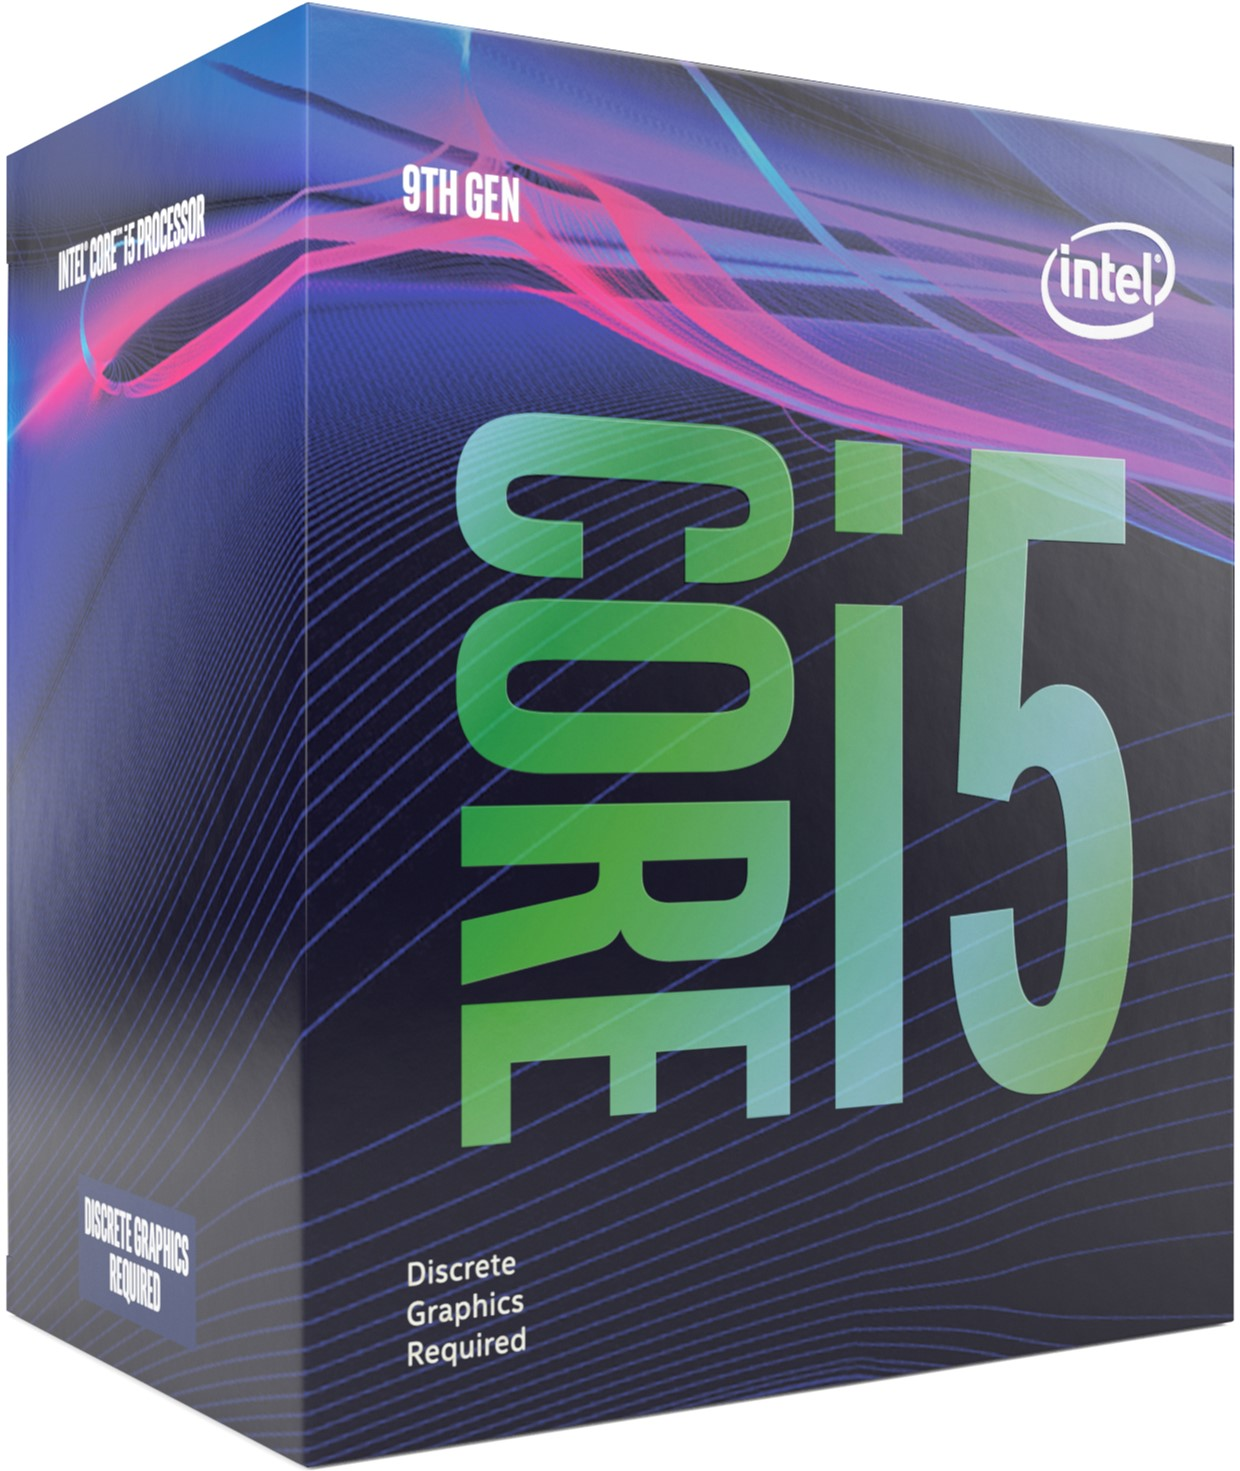 Процессор Intel Core i5-9400F 2.9GHz/8GT/s/9MB  s1151 BOX